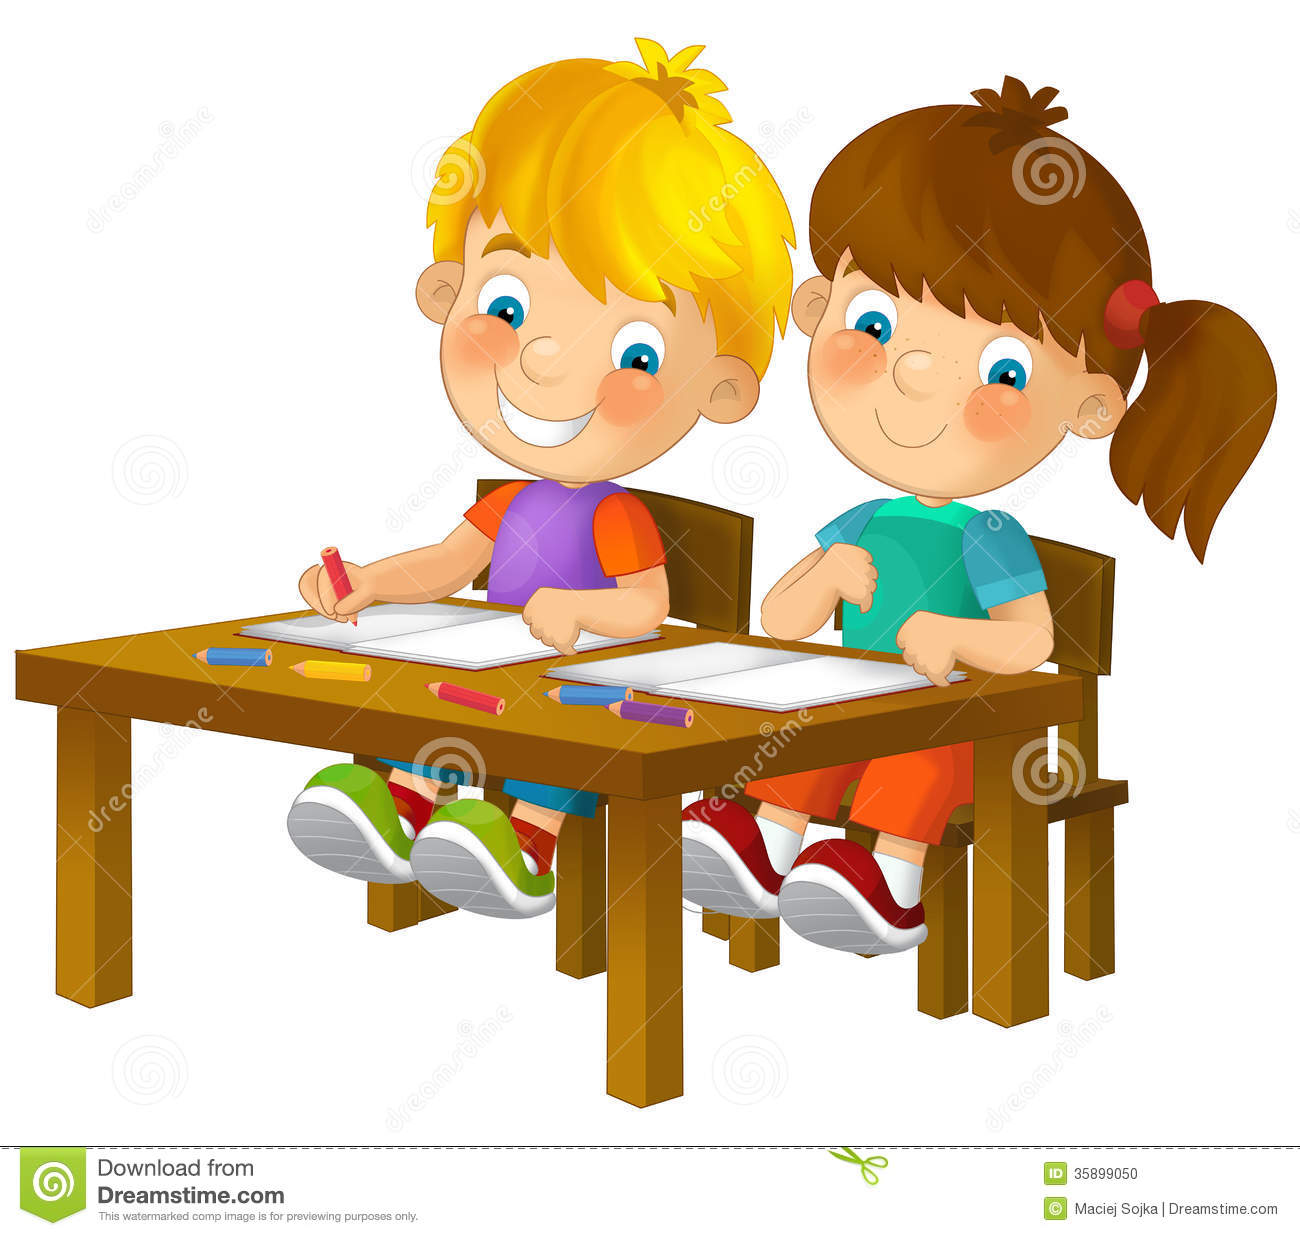 Tope Color Cartoon Children Sitting Learning Illustration For The